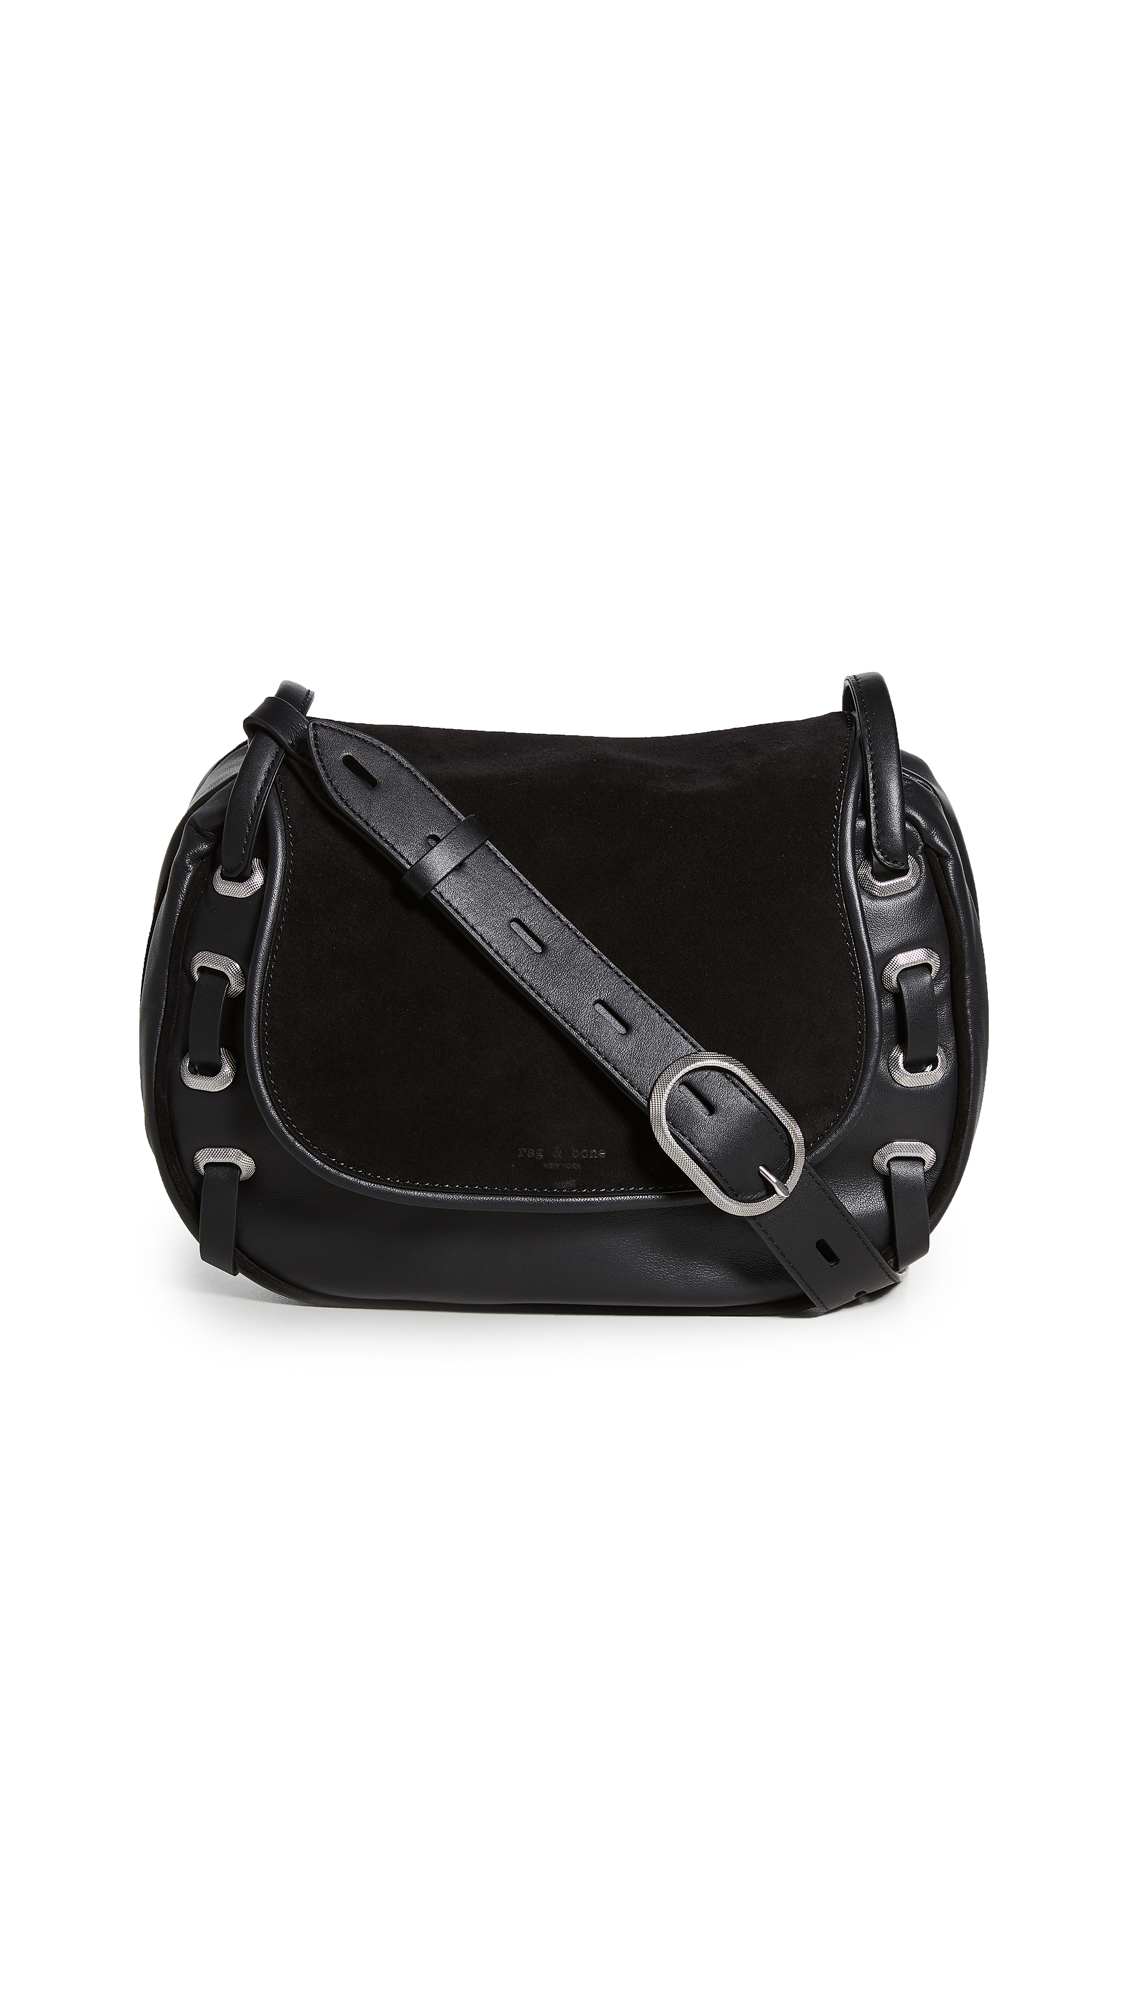 Rag & Bone Legend Saddle Bag